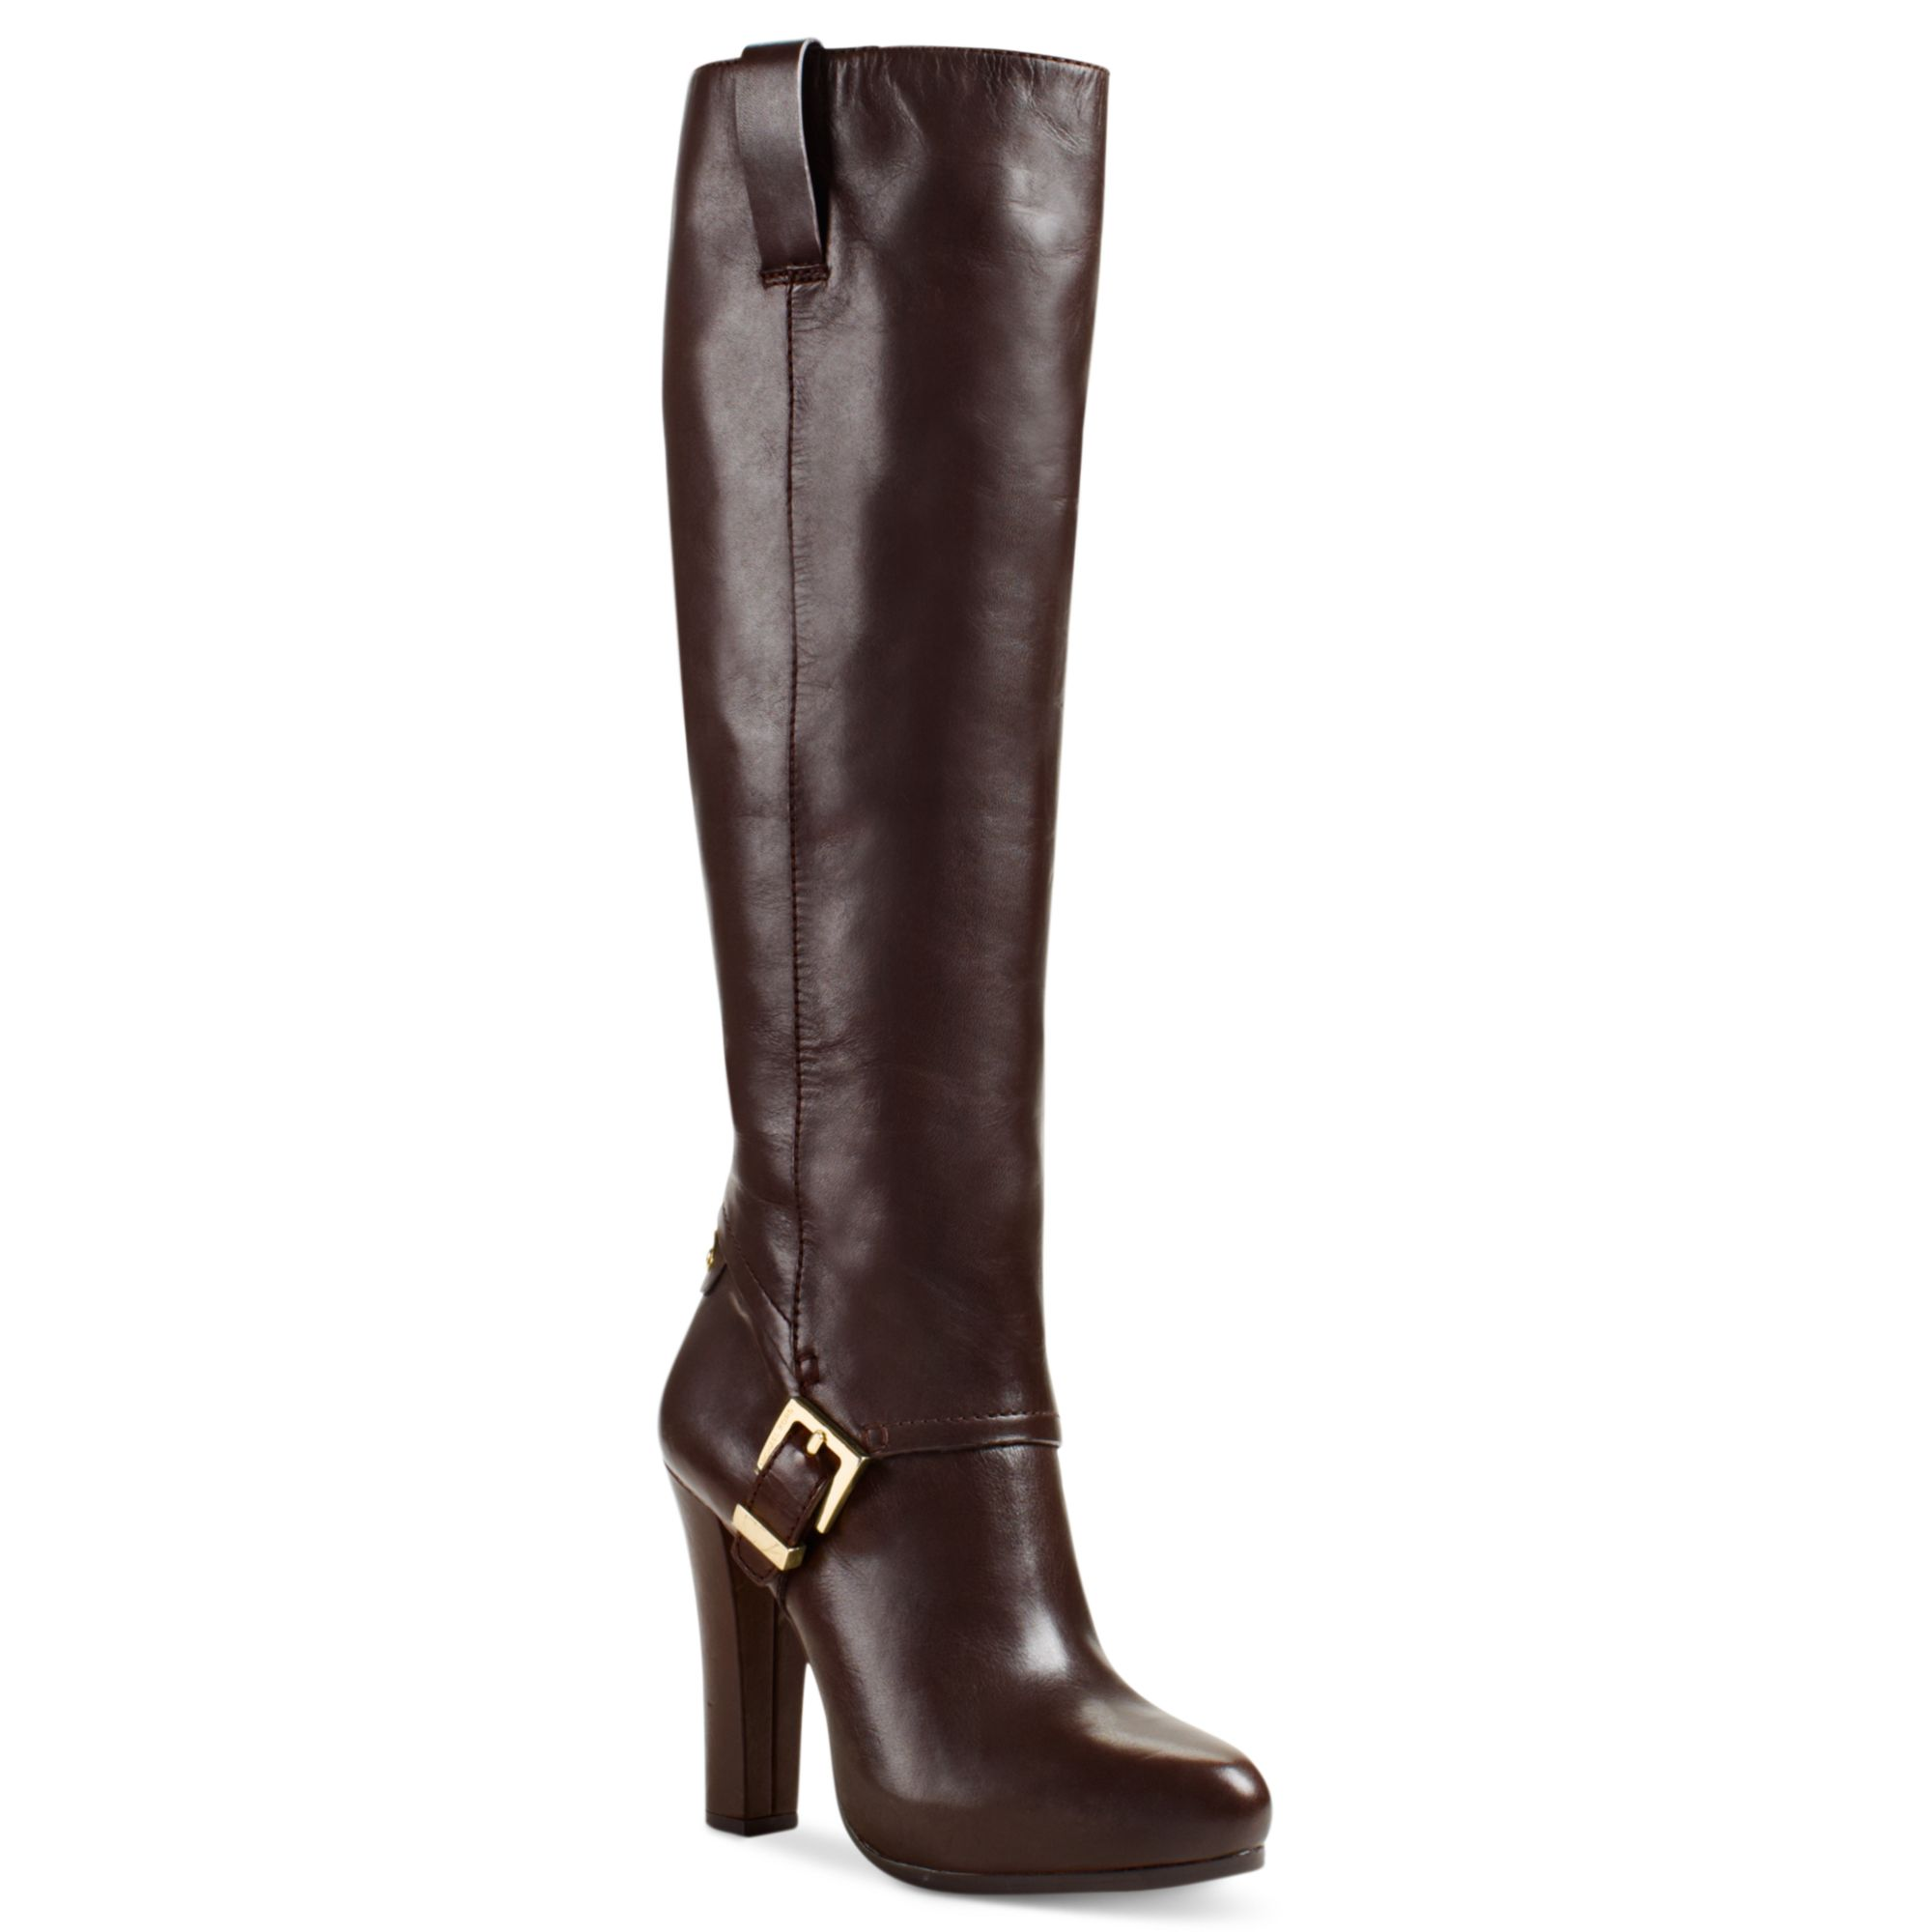 michael kors tamara high heel dress boots in brown coffee